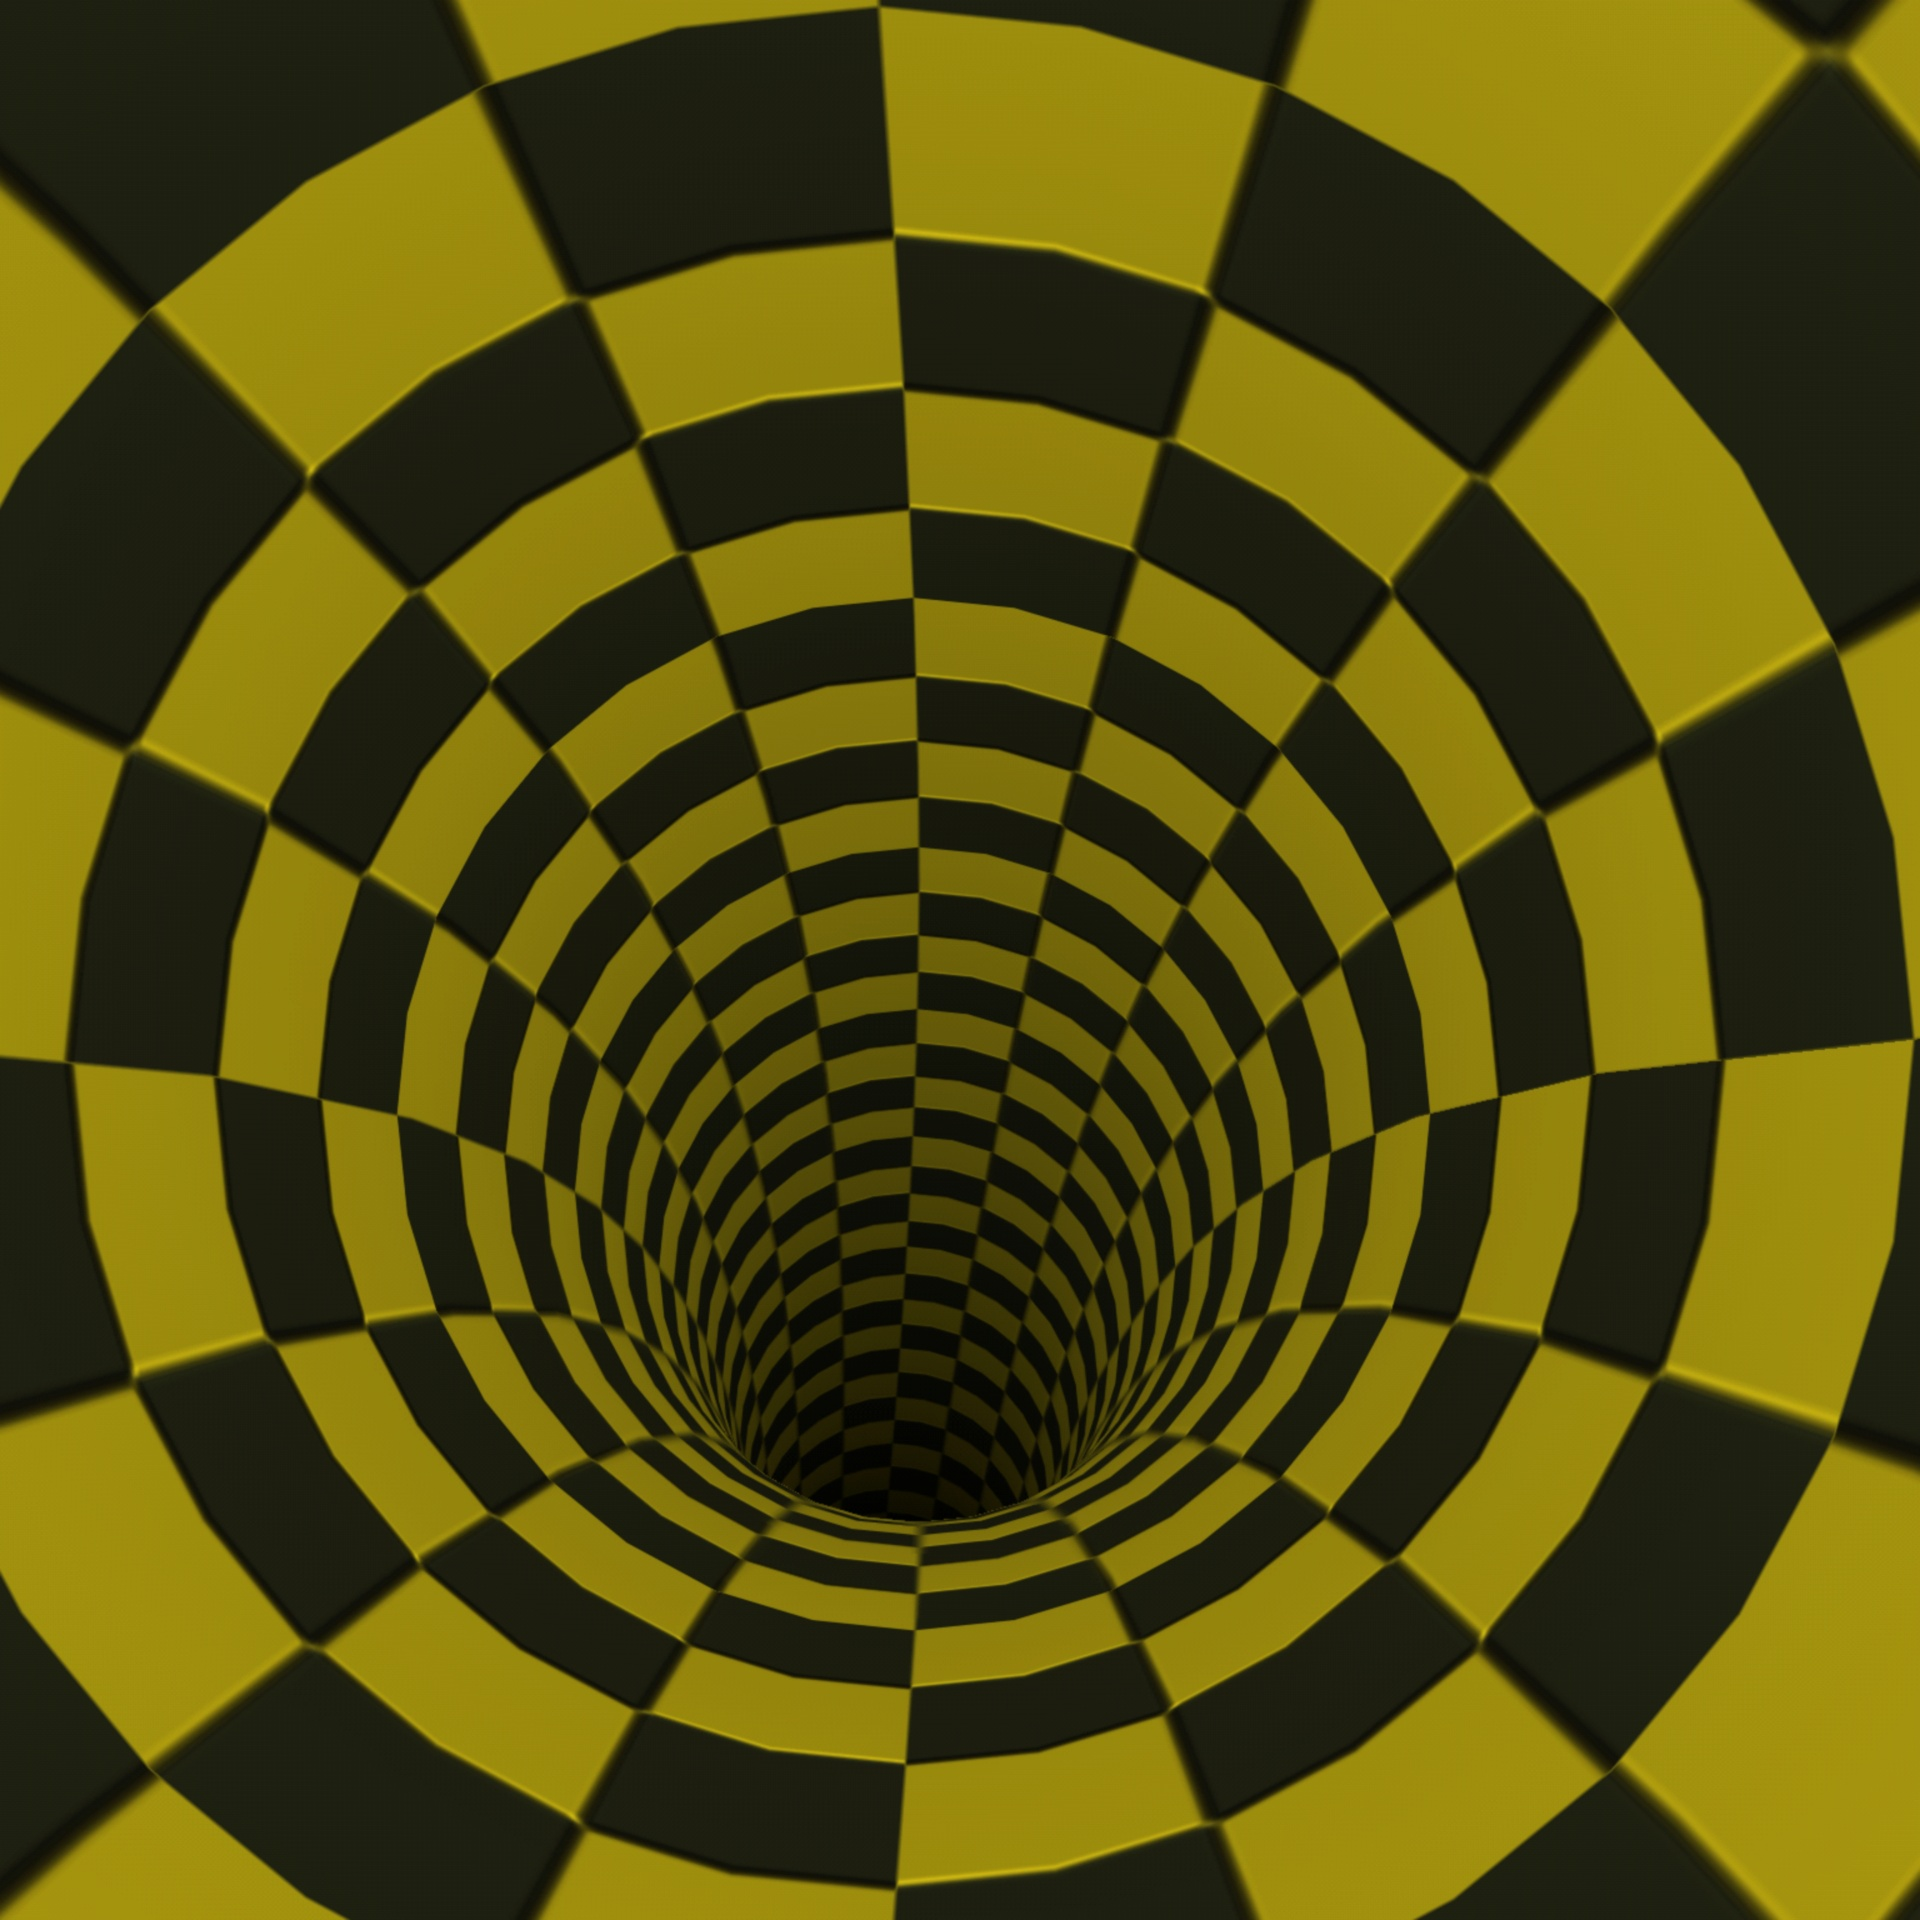 Wallpaper Black Yellow Checkerboard Tunnel Free Image From